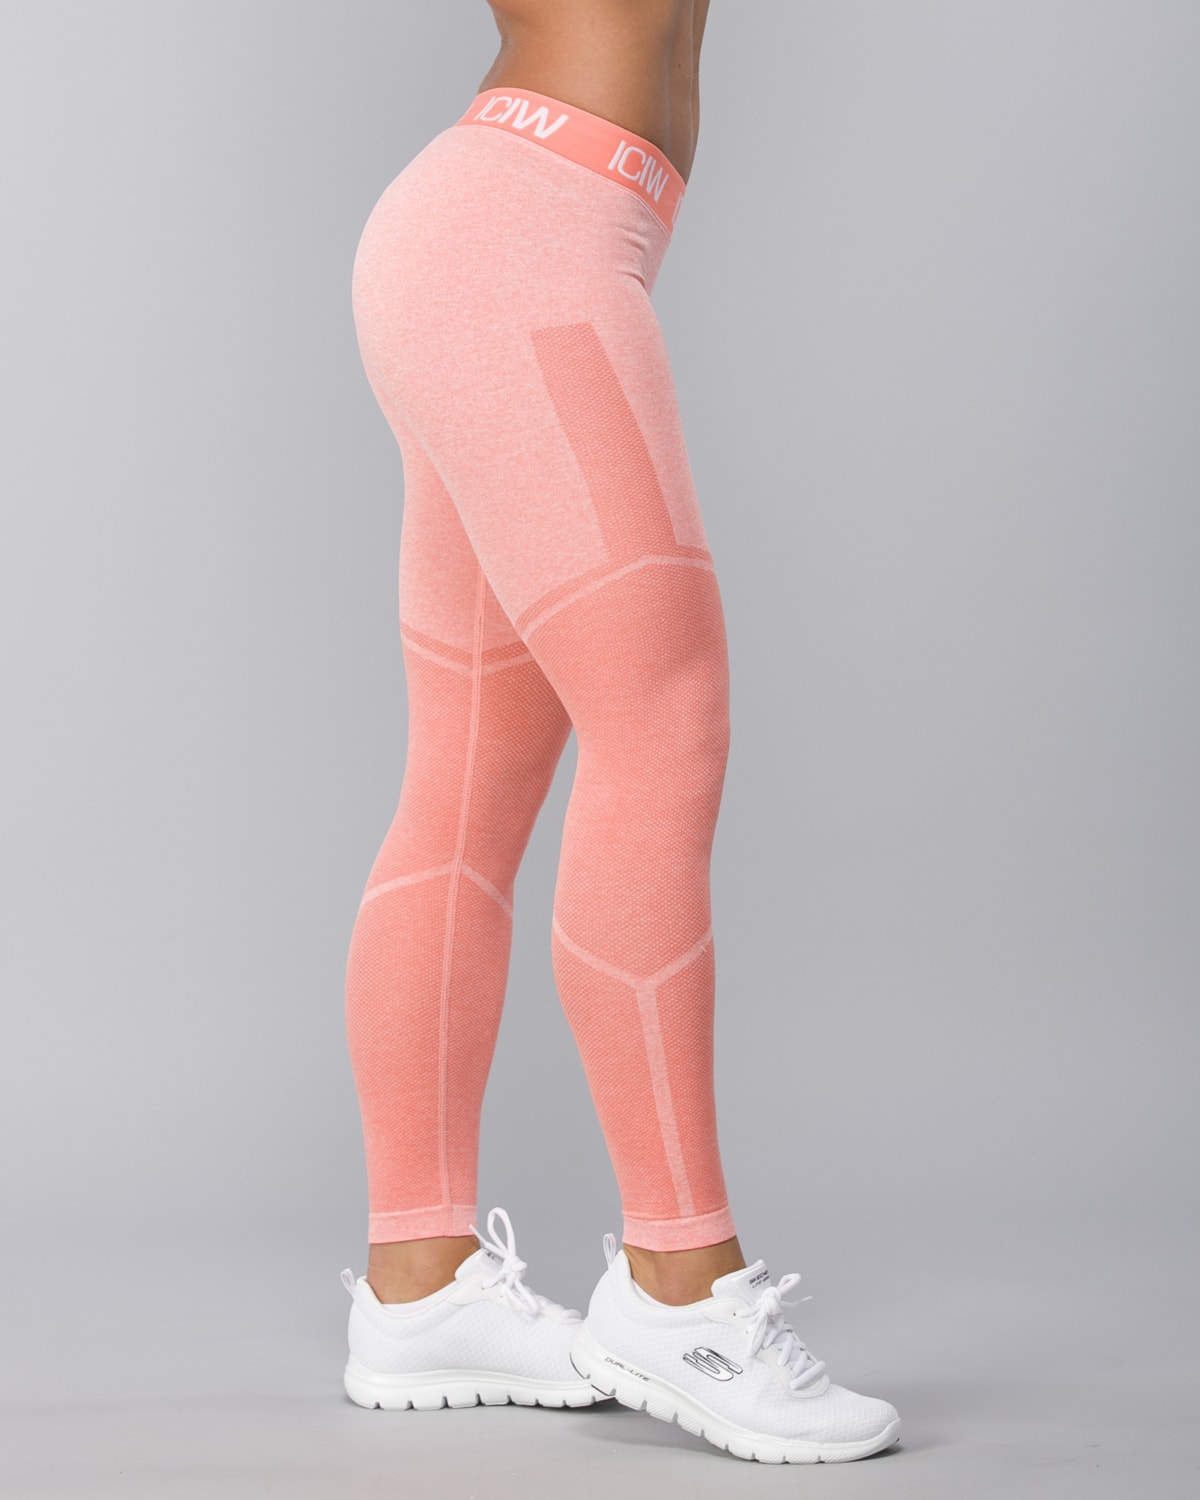 Icaniwill-Seamless Tights–Peach2